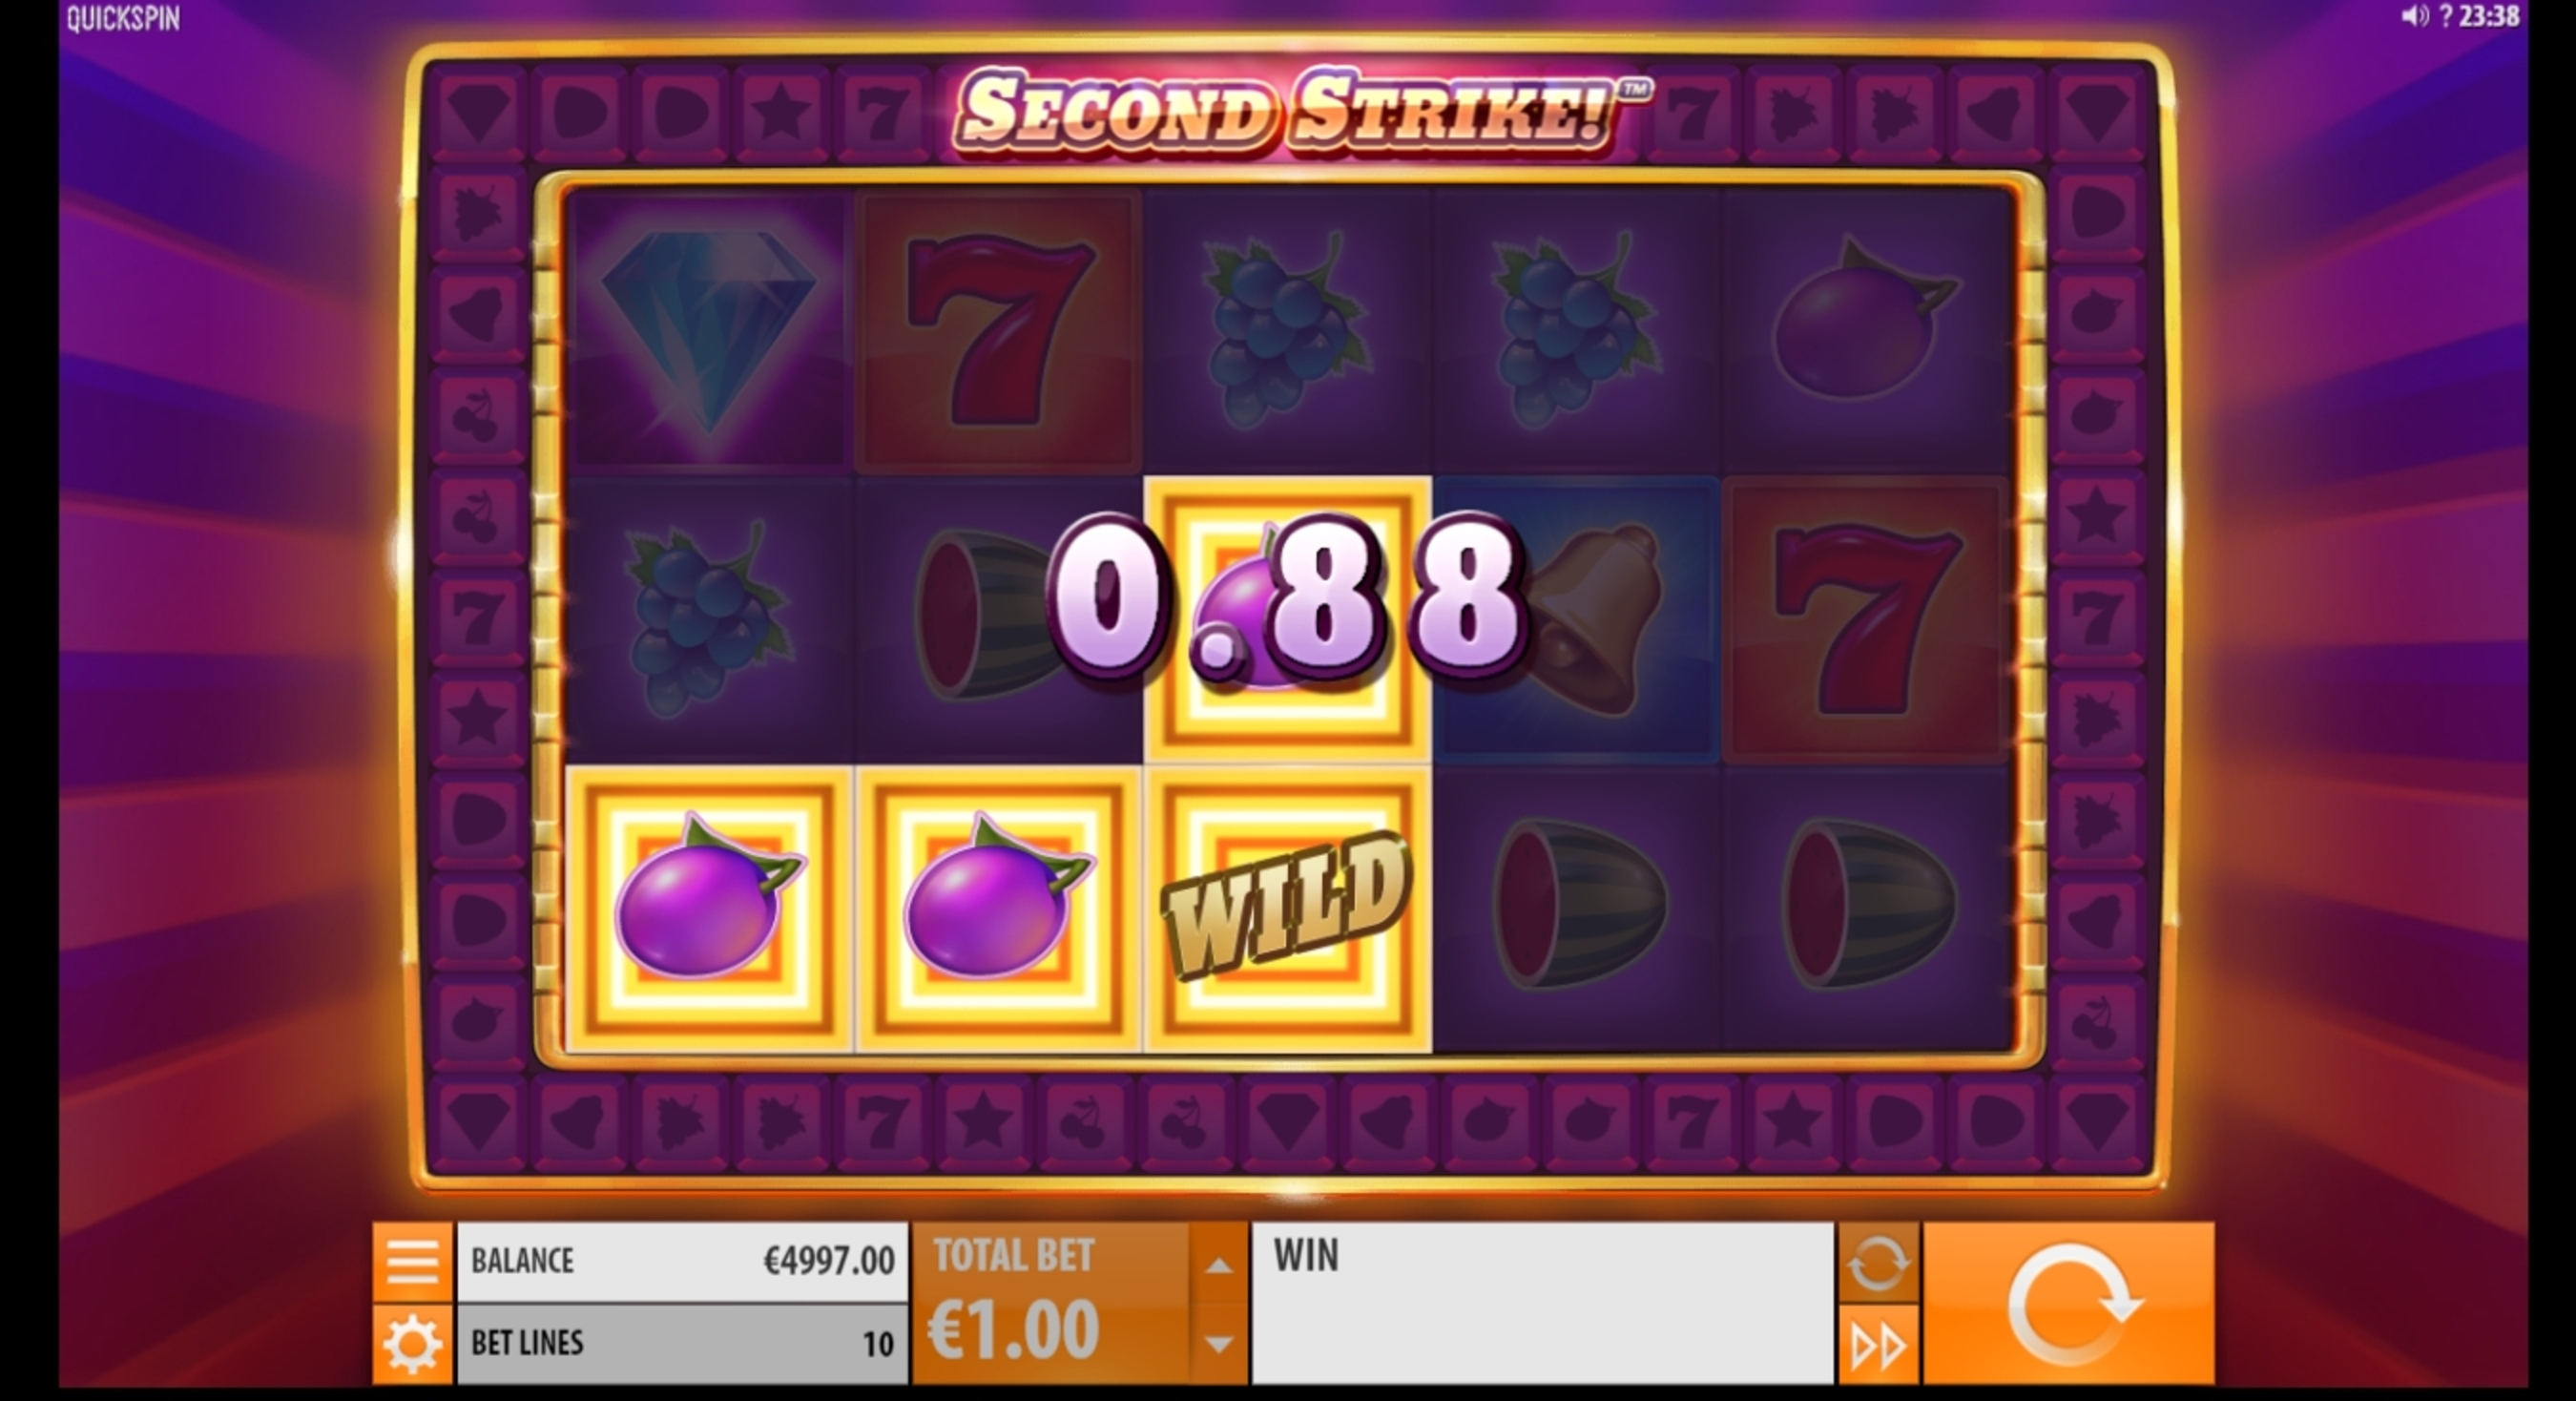 Win Money in Second Strike Free Slot Game by Quickspin